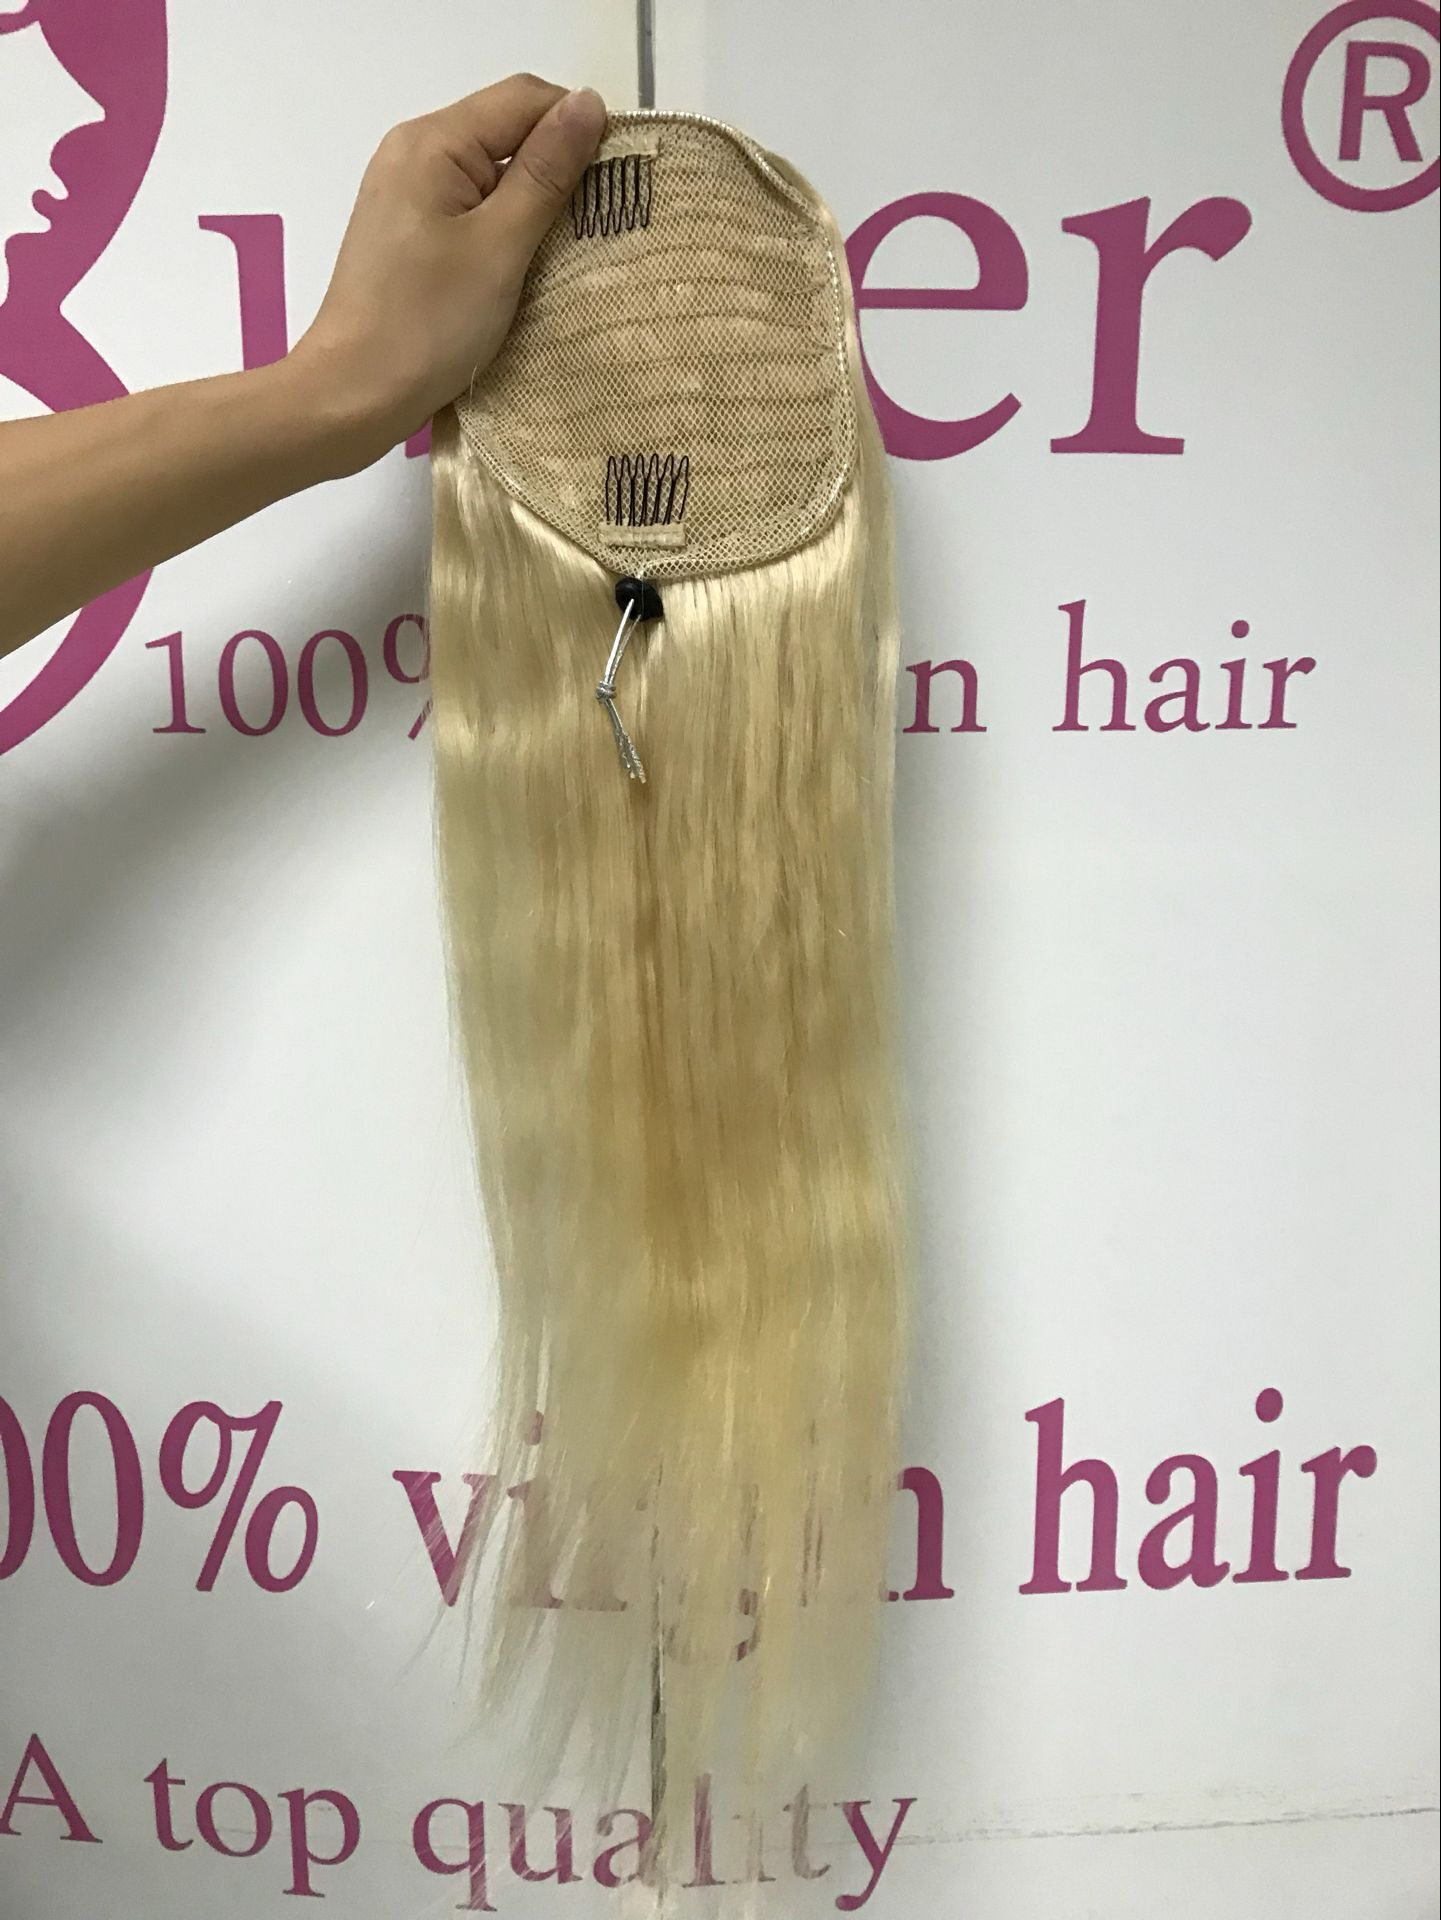 30 Inch Ponytail Extension Human Hair for Black Women Medium Layered Hair Blonde Drawstring Wrap Around